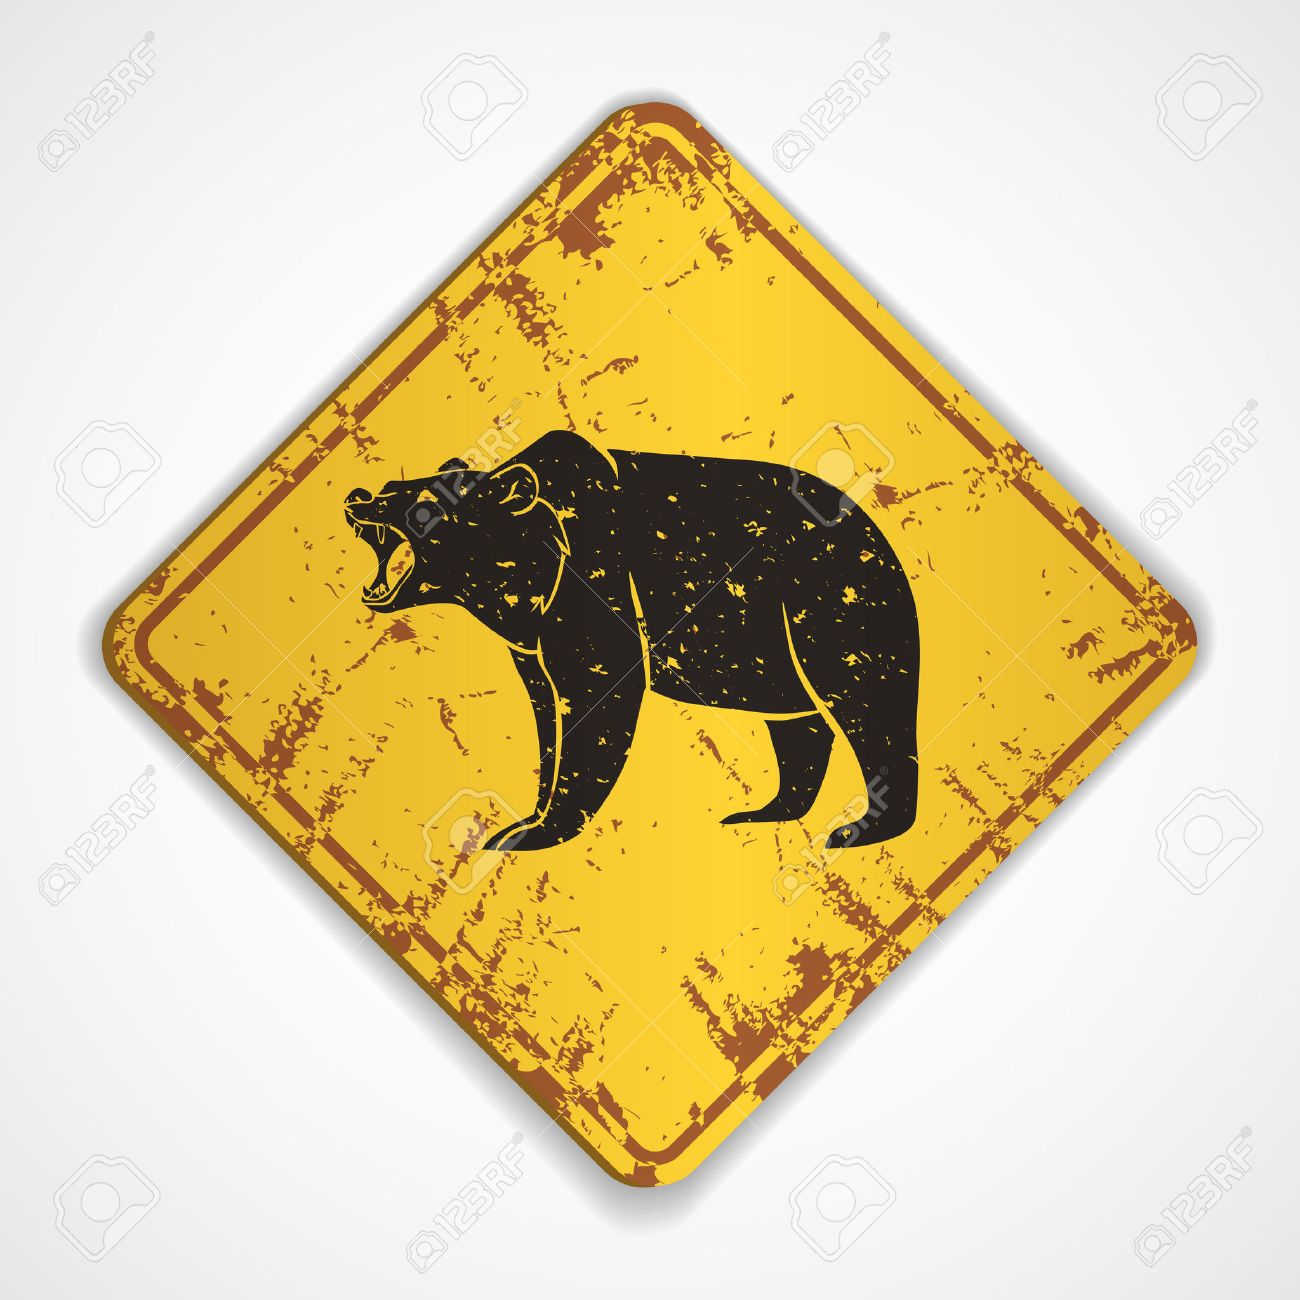 Old metal plate with roaring bear.Vector illustration Stock Vector - 38427924